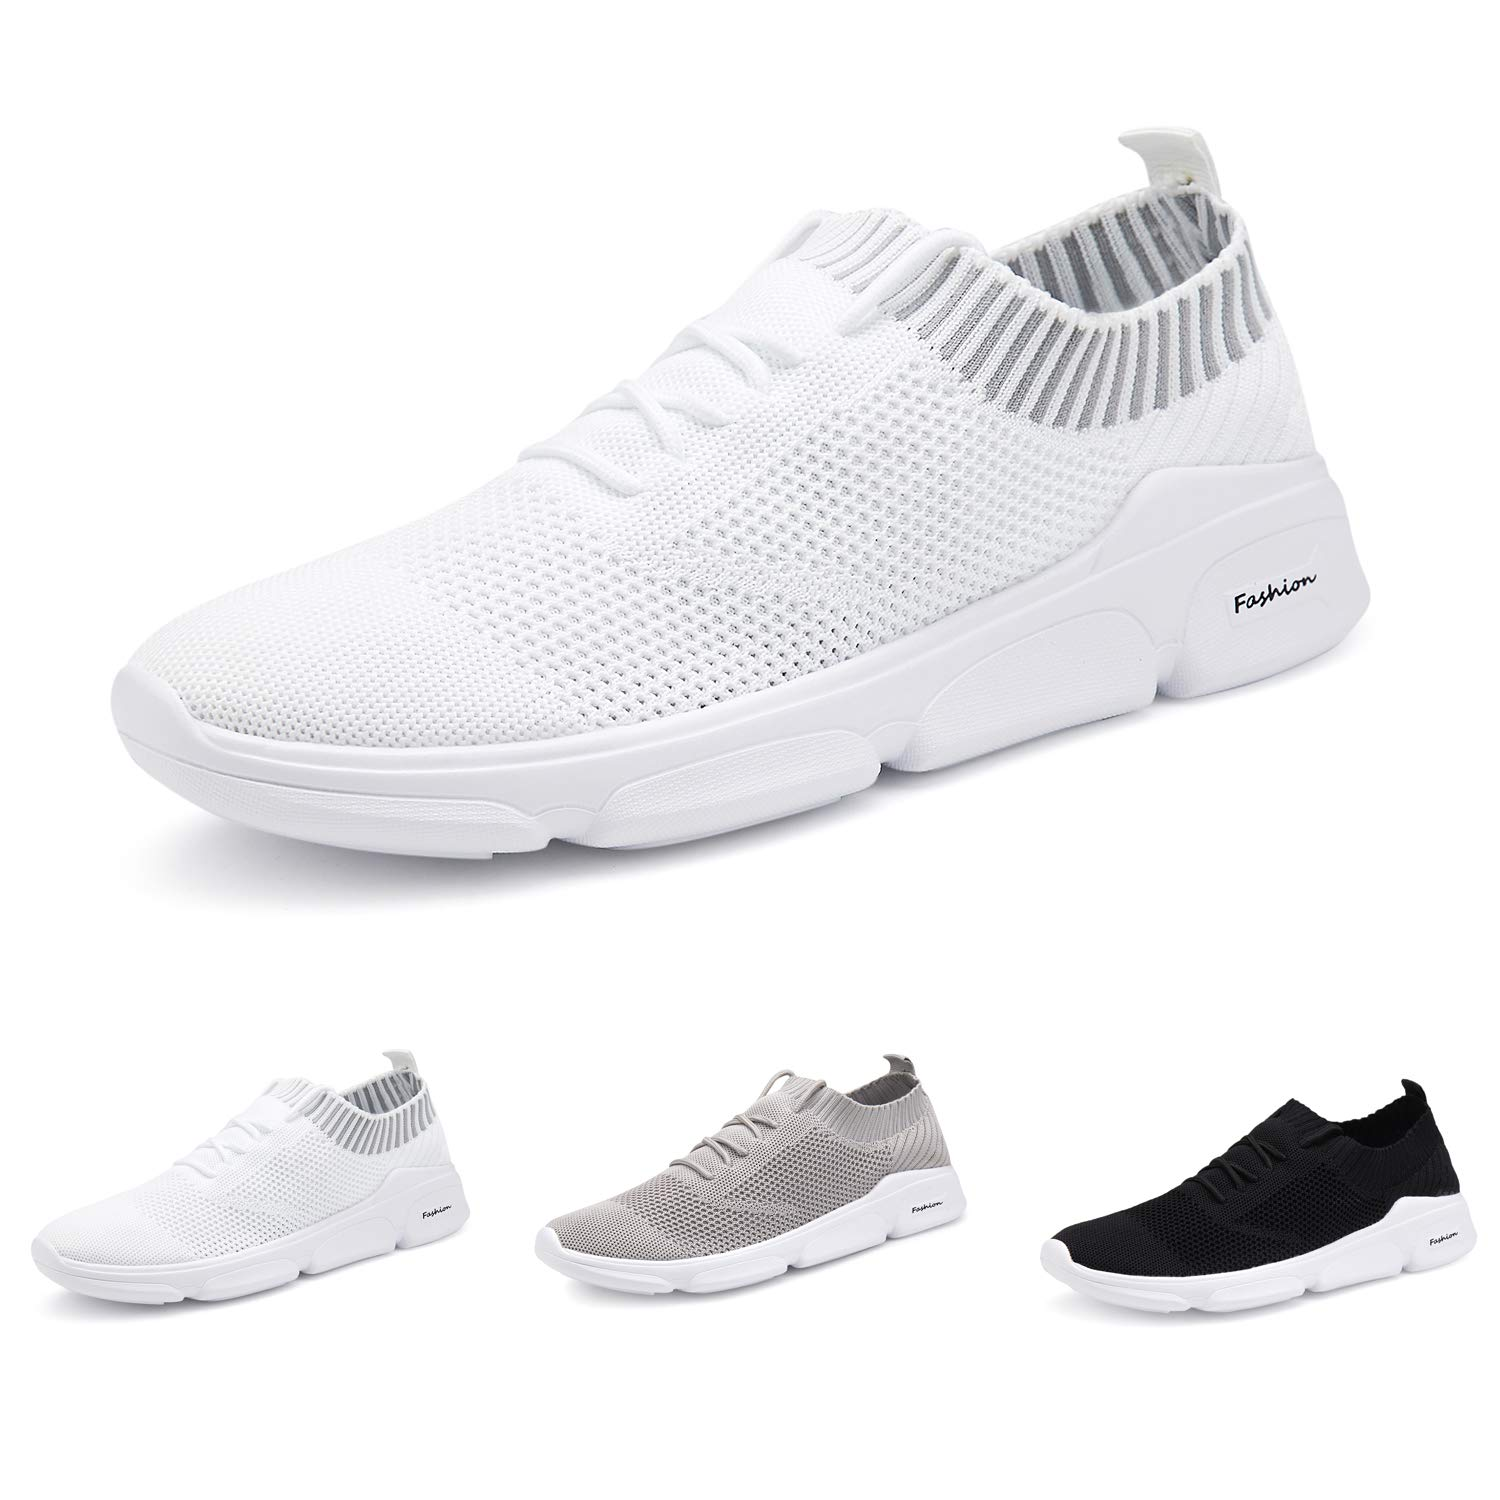 ANTETOKUPO Mens Running Shoes Mesh Sport Knitted Lightweight Casual Walking Shoes Fashion Sneakers Athletic Shoes Men (10, White-A) by ANTETOKUPO